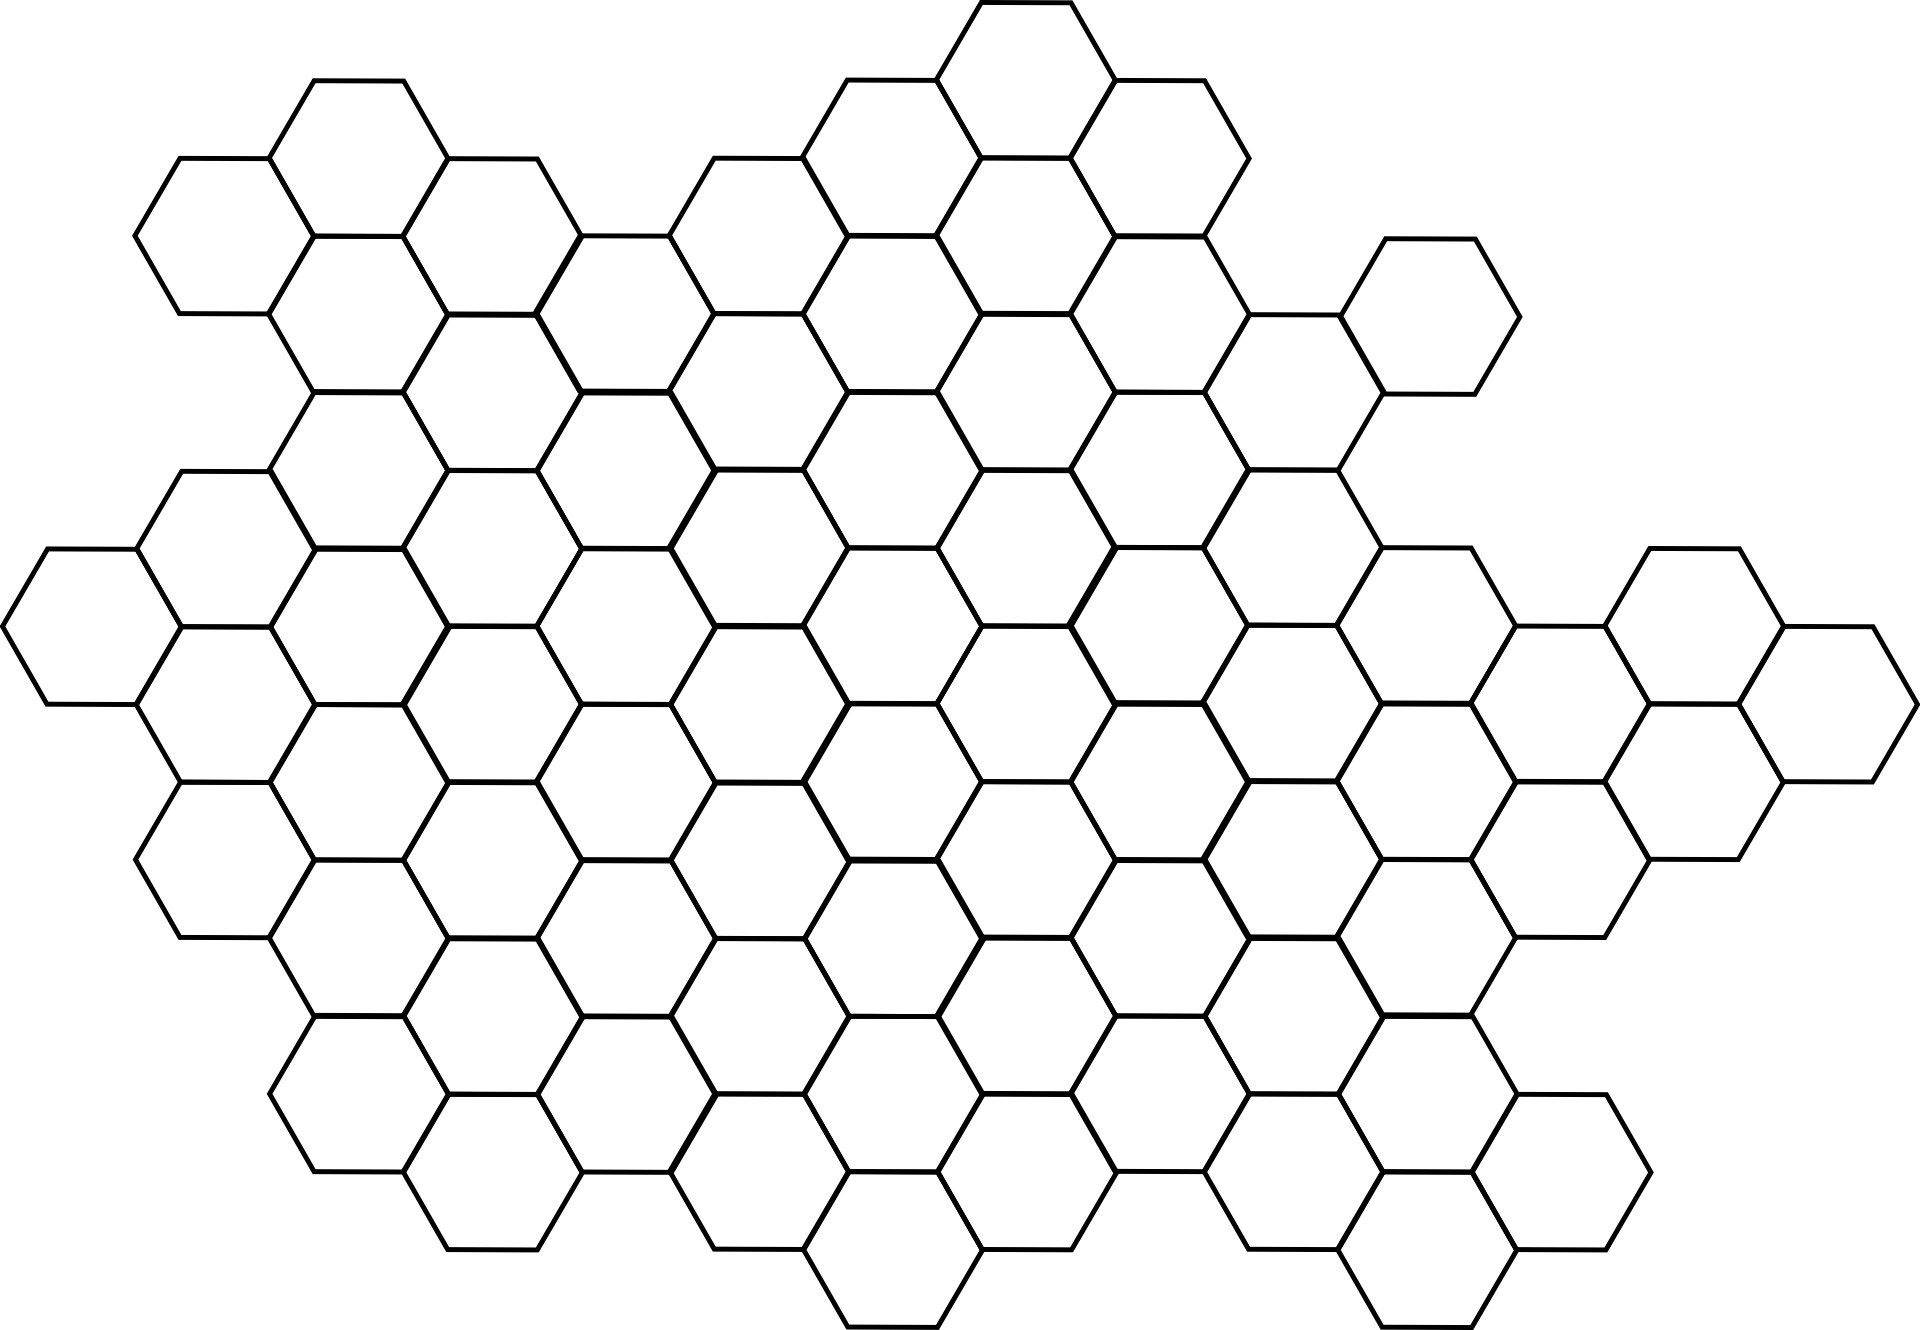 Vector sketches pattern. Honeycomb grid hexagon patterns